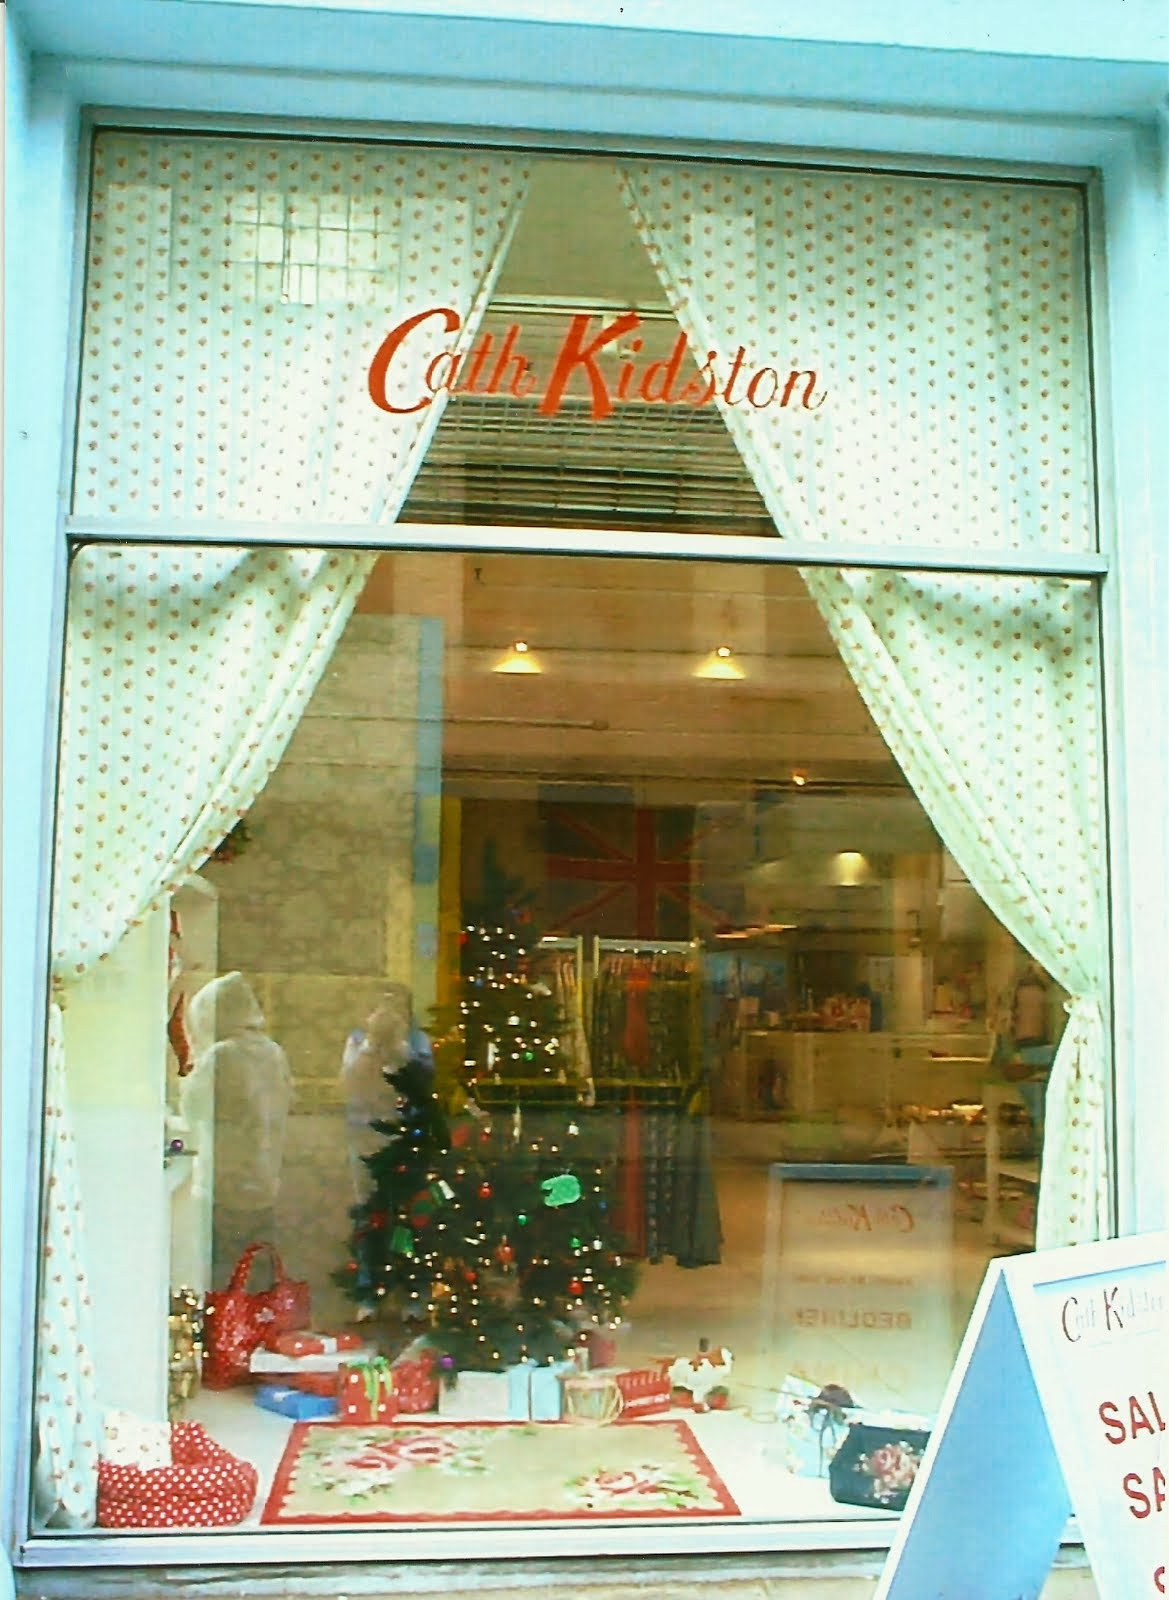 I heart Cath Kidston